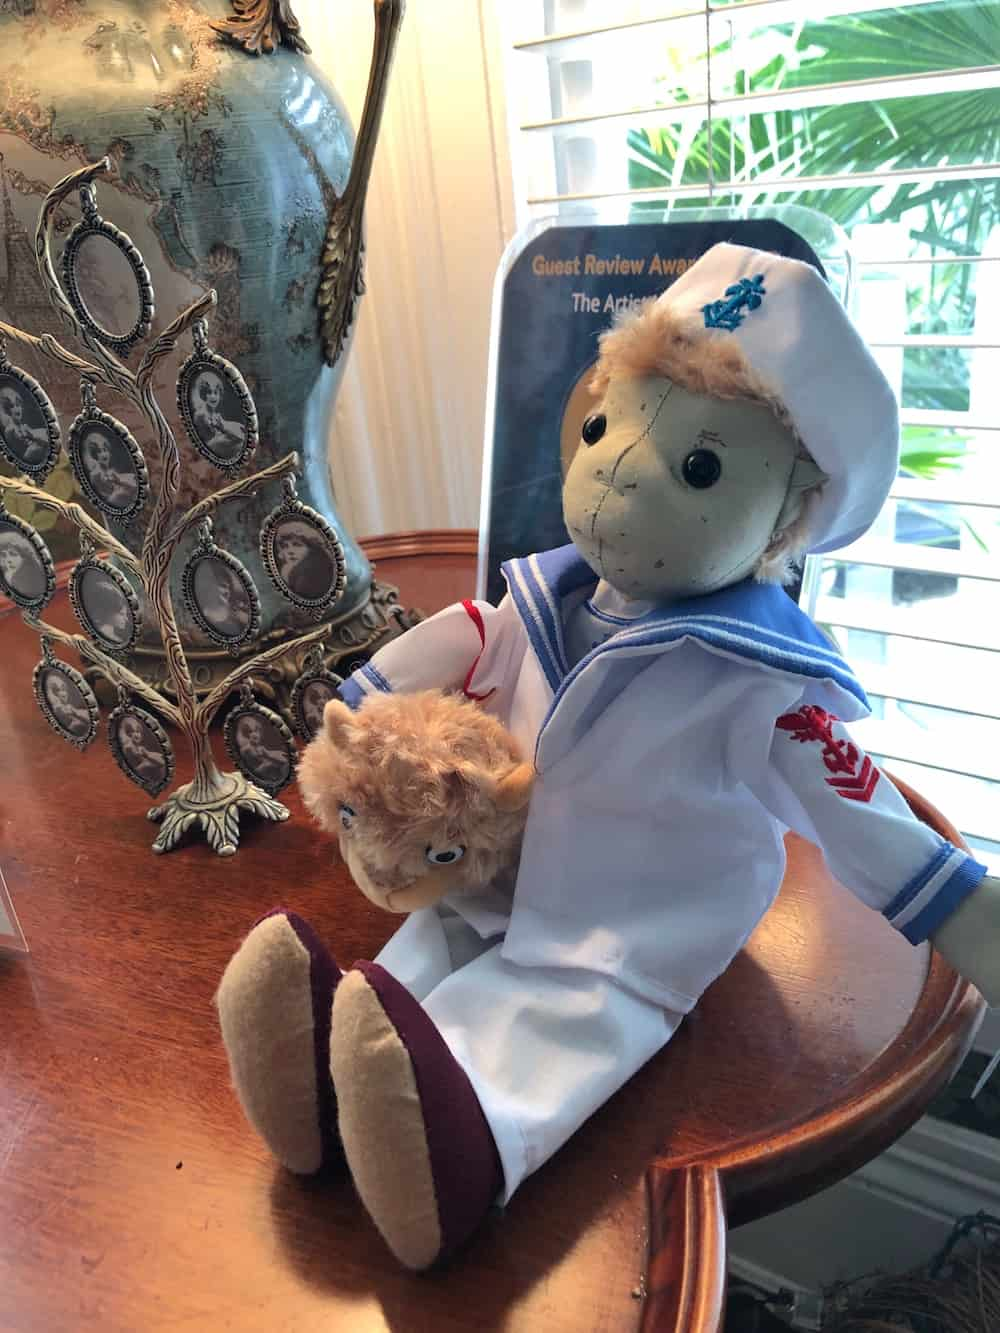 Key West, Artist House, Robert the doll, Bed and breakfast